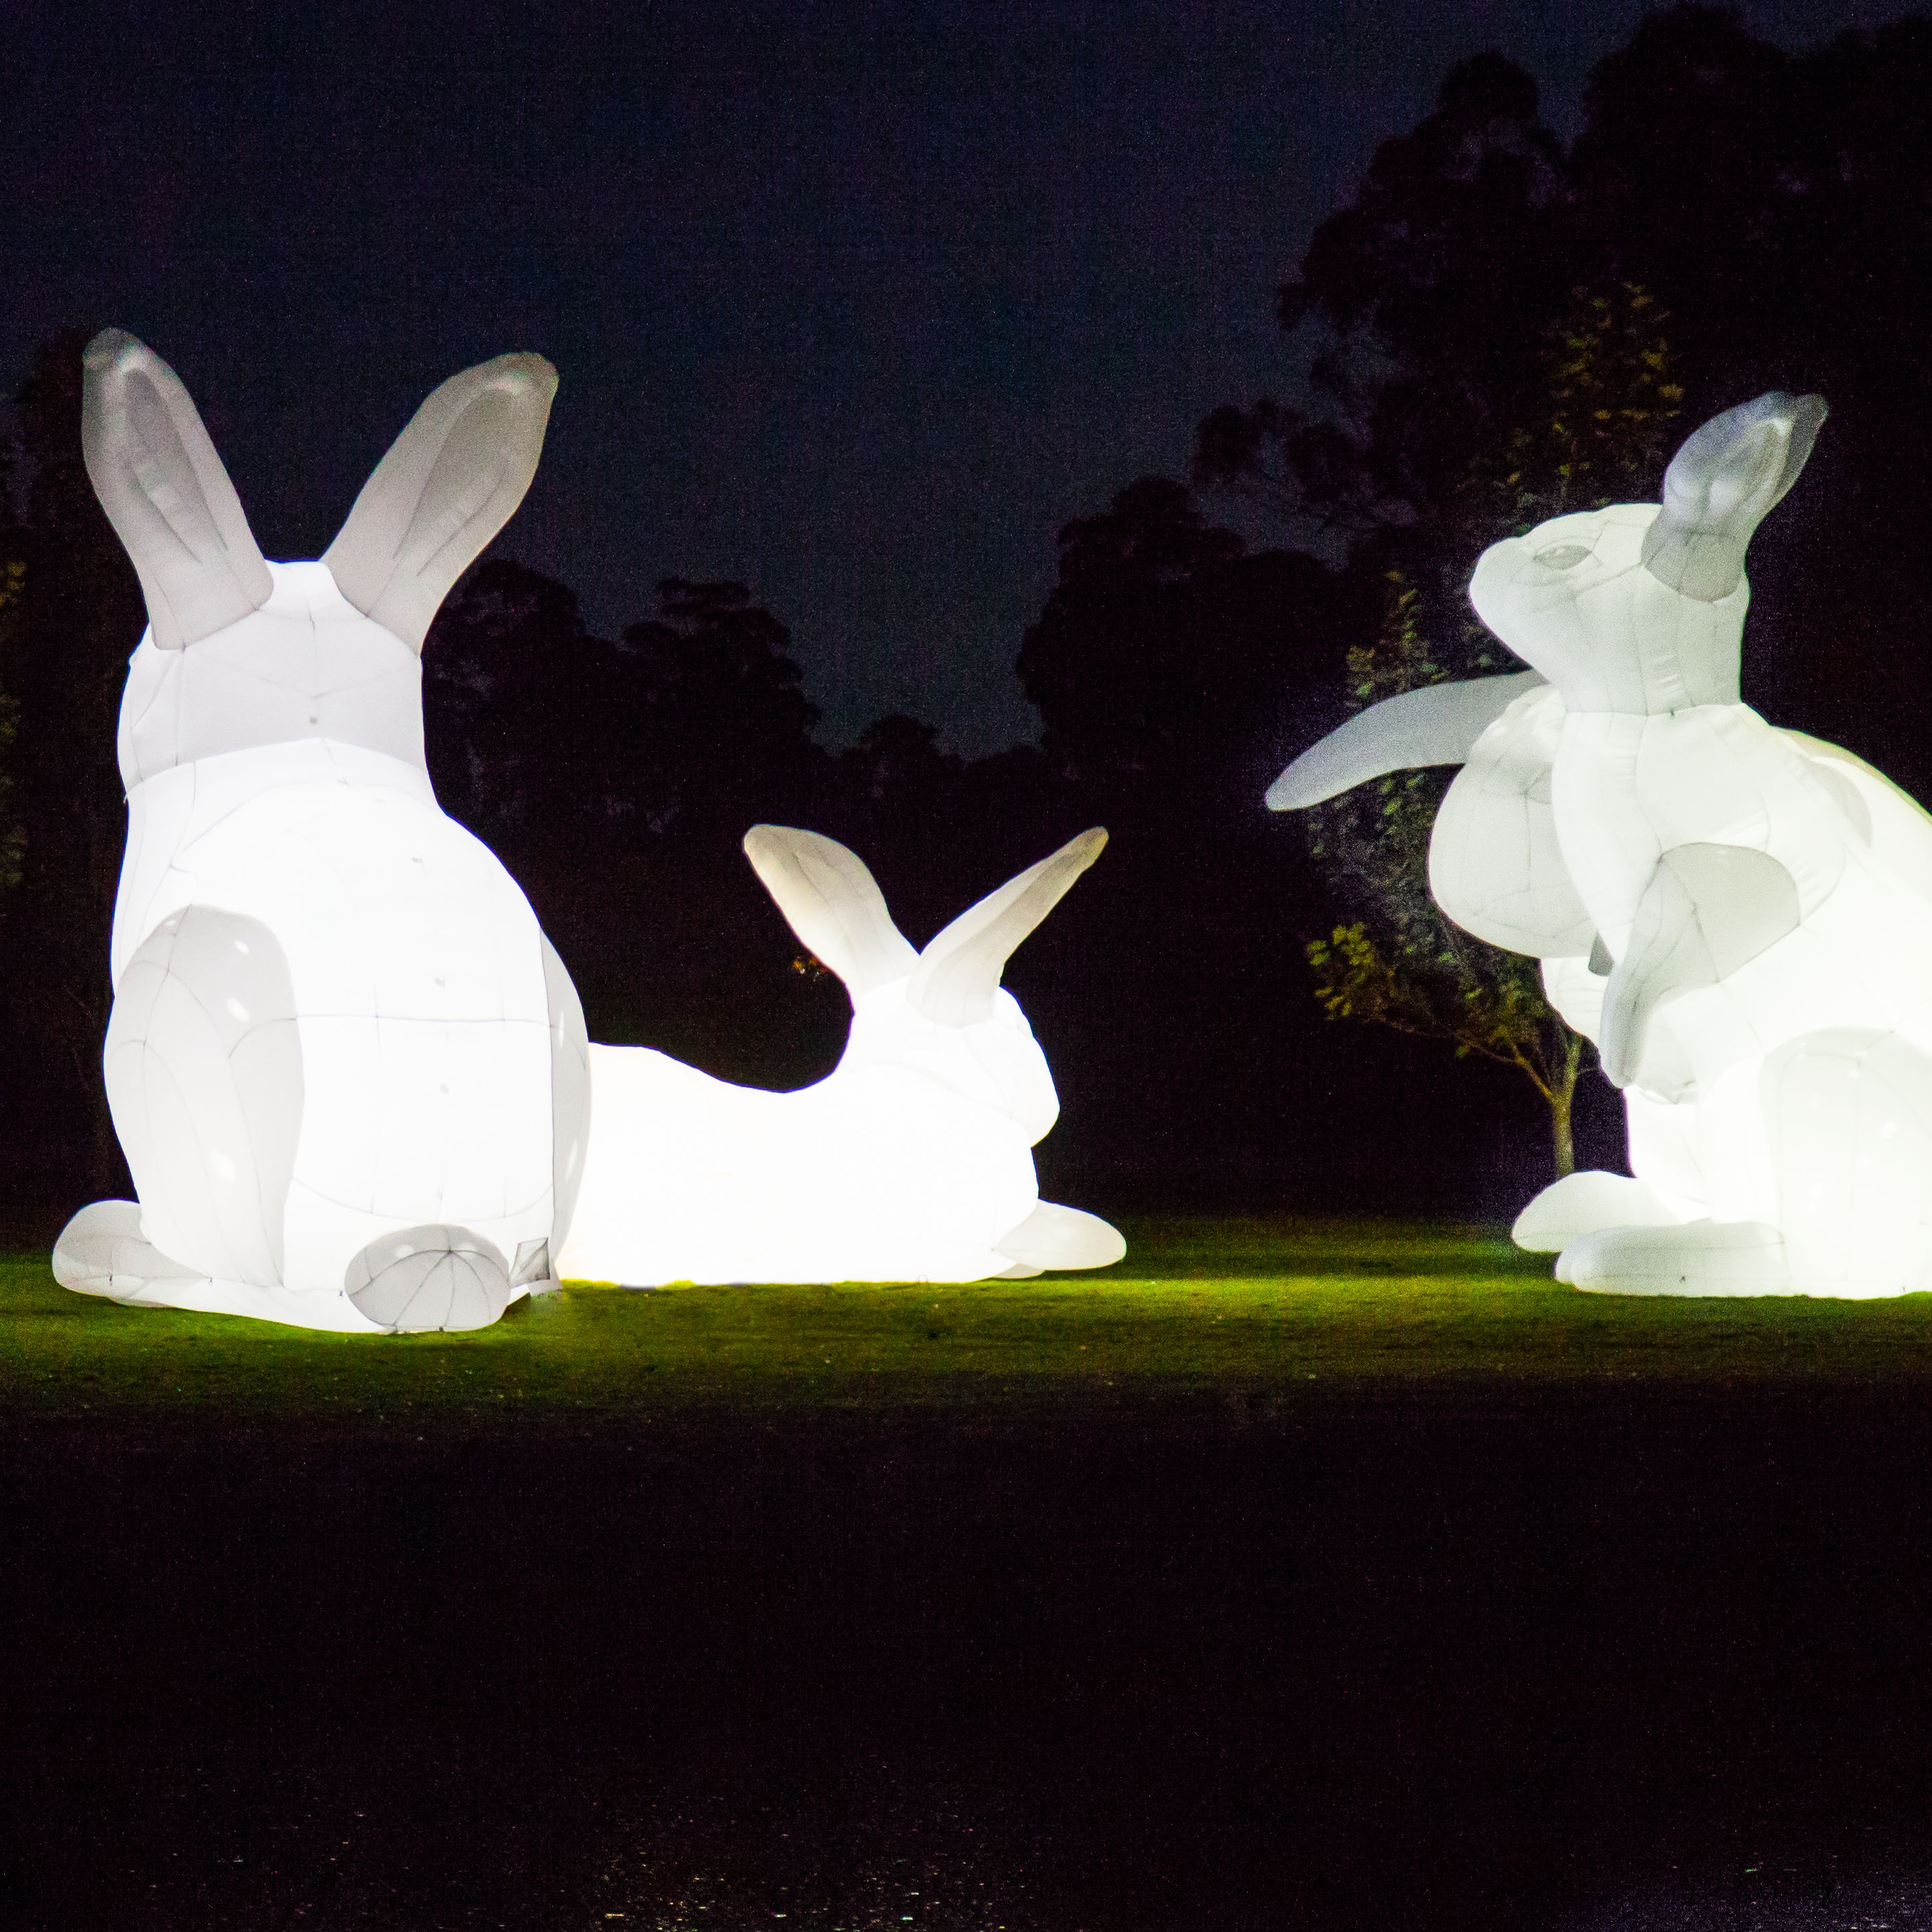 Large bunny sculptures lit up at night